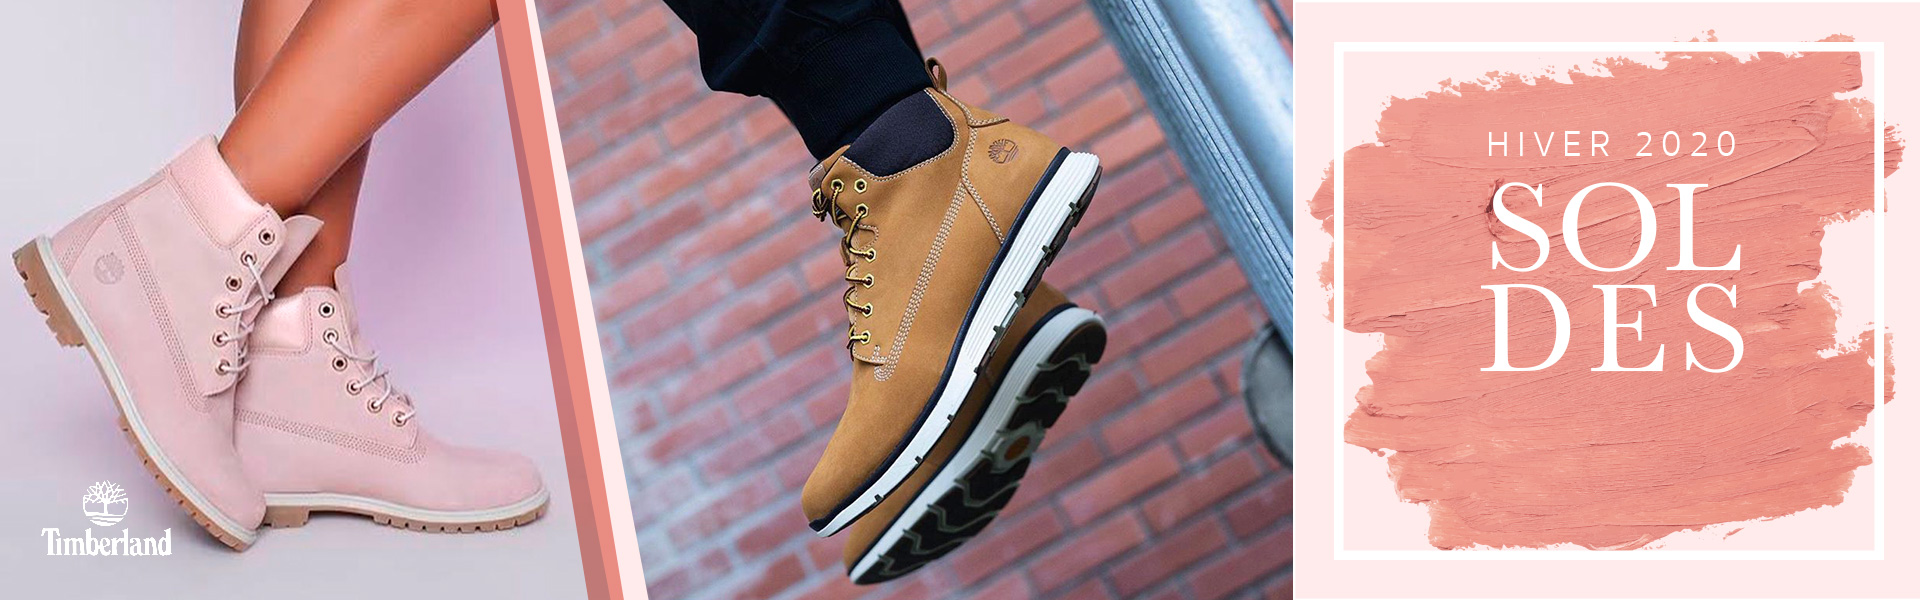 2-20200107-SOLDES-TIMBERLAND